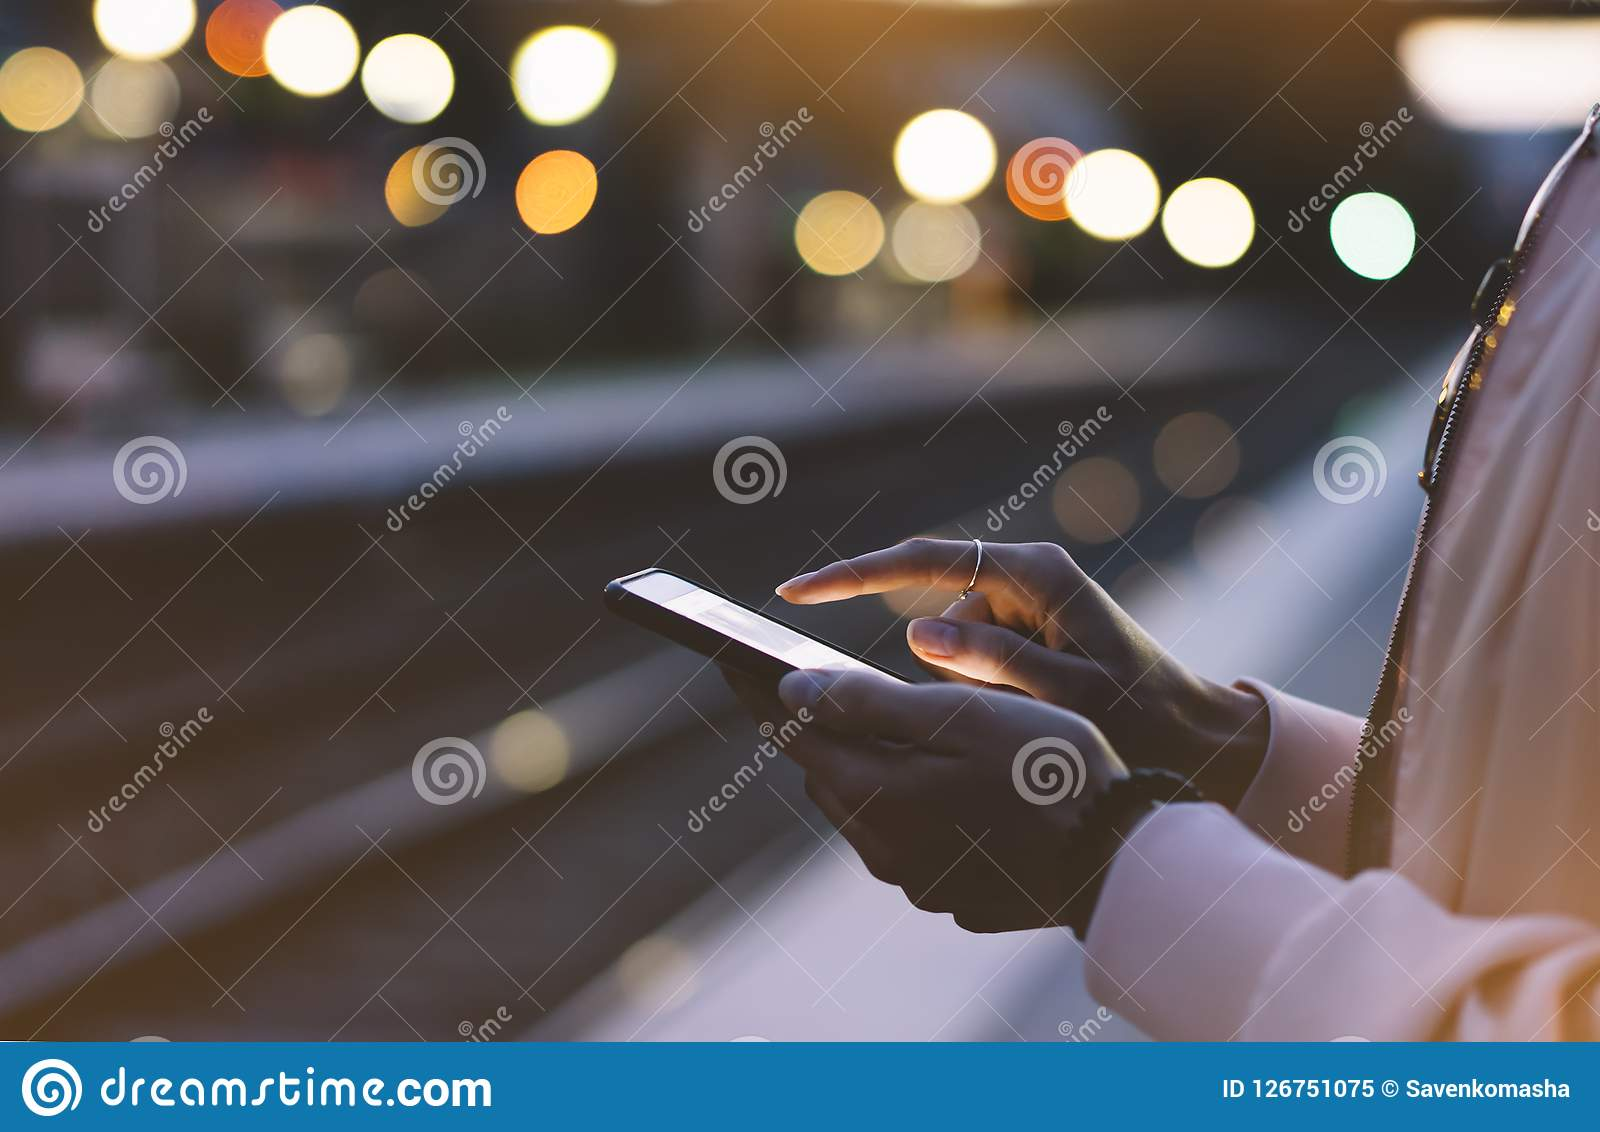 Enjoying travel. Young woman waiting on station platform on background light electric moving train using smart phone in night